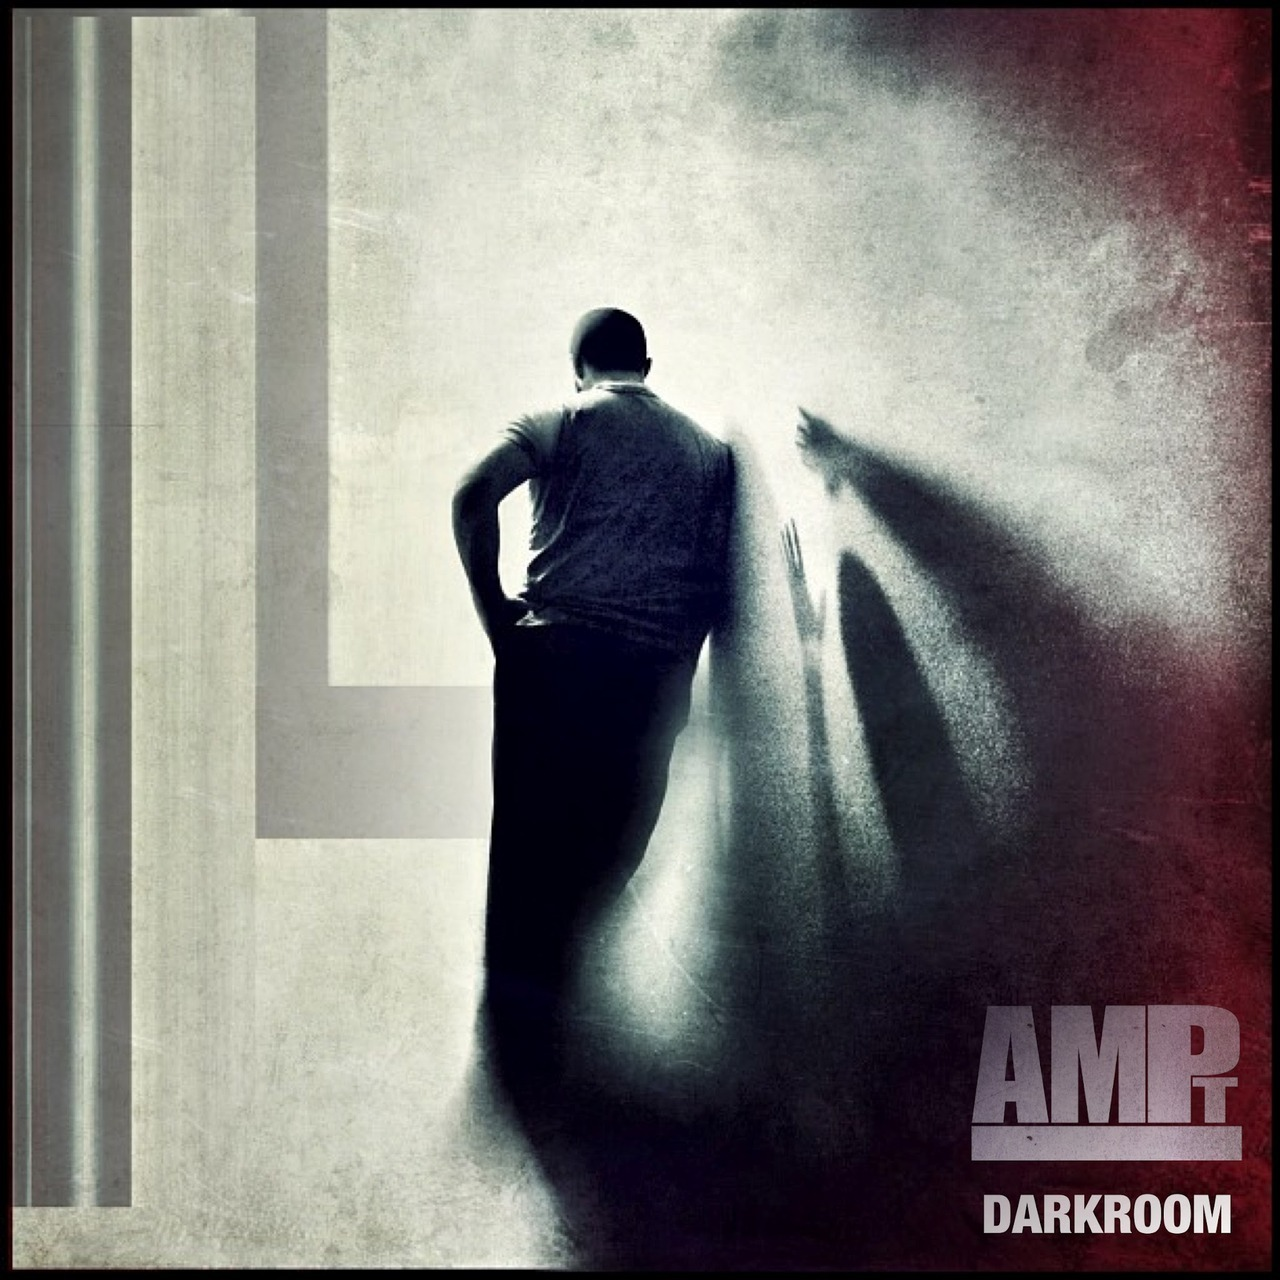 "AMPt Darkroom - Harnessing the Power of ""Selective App Stacking""""App Stacking"" is a common term used to describe the processing of an image through multiple apps to achieve a final edit. In fact, most mobile photographers use this technique every day and for many it has changed the way they approach their editing workflow. But are you familiar with ""Selective App Stacking""? You should be…it might just change how you edit all over again.In this Darkroom lesson we discuss the concept behind ""Selective App Stacking"" and Adam Conner shows how it can be used to improve the quality of your images while bringing new levels of control to your editing process. Don't miss the FULL TUTORIAL for a full breakdown of this technique.Check back for new Darkroom mobile photography lessons every Monday & Tuesday @ ampteam.org"